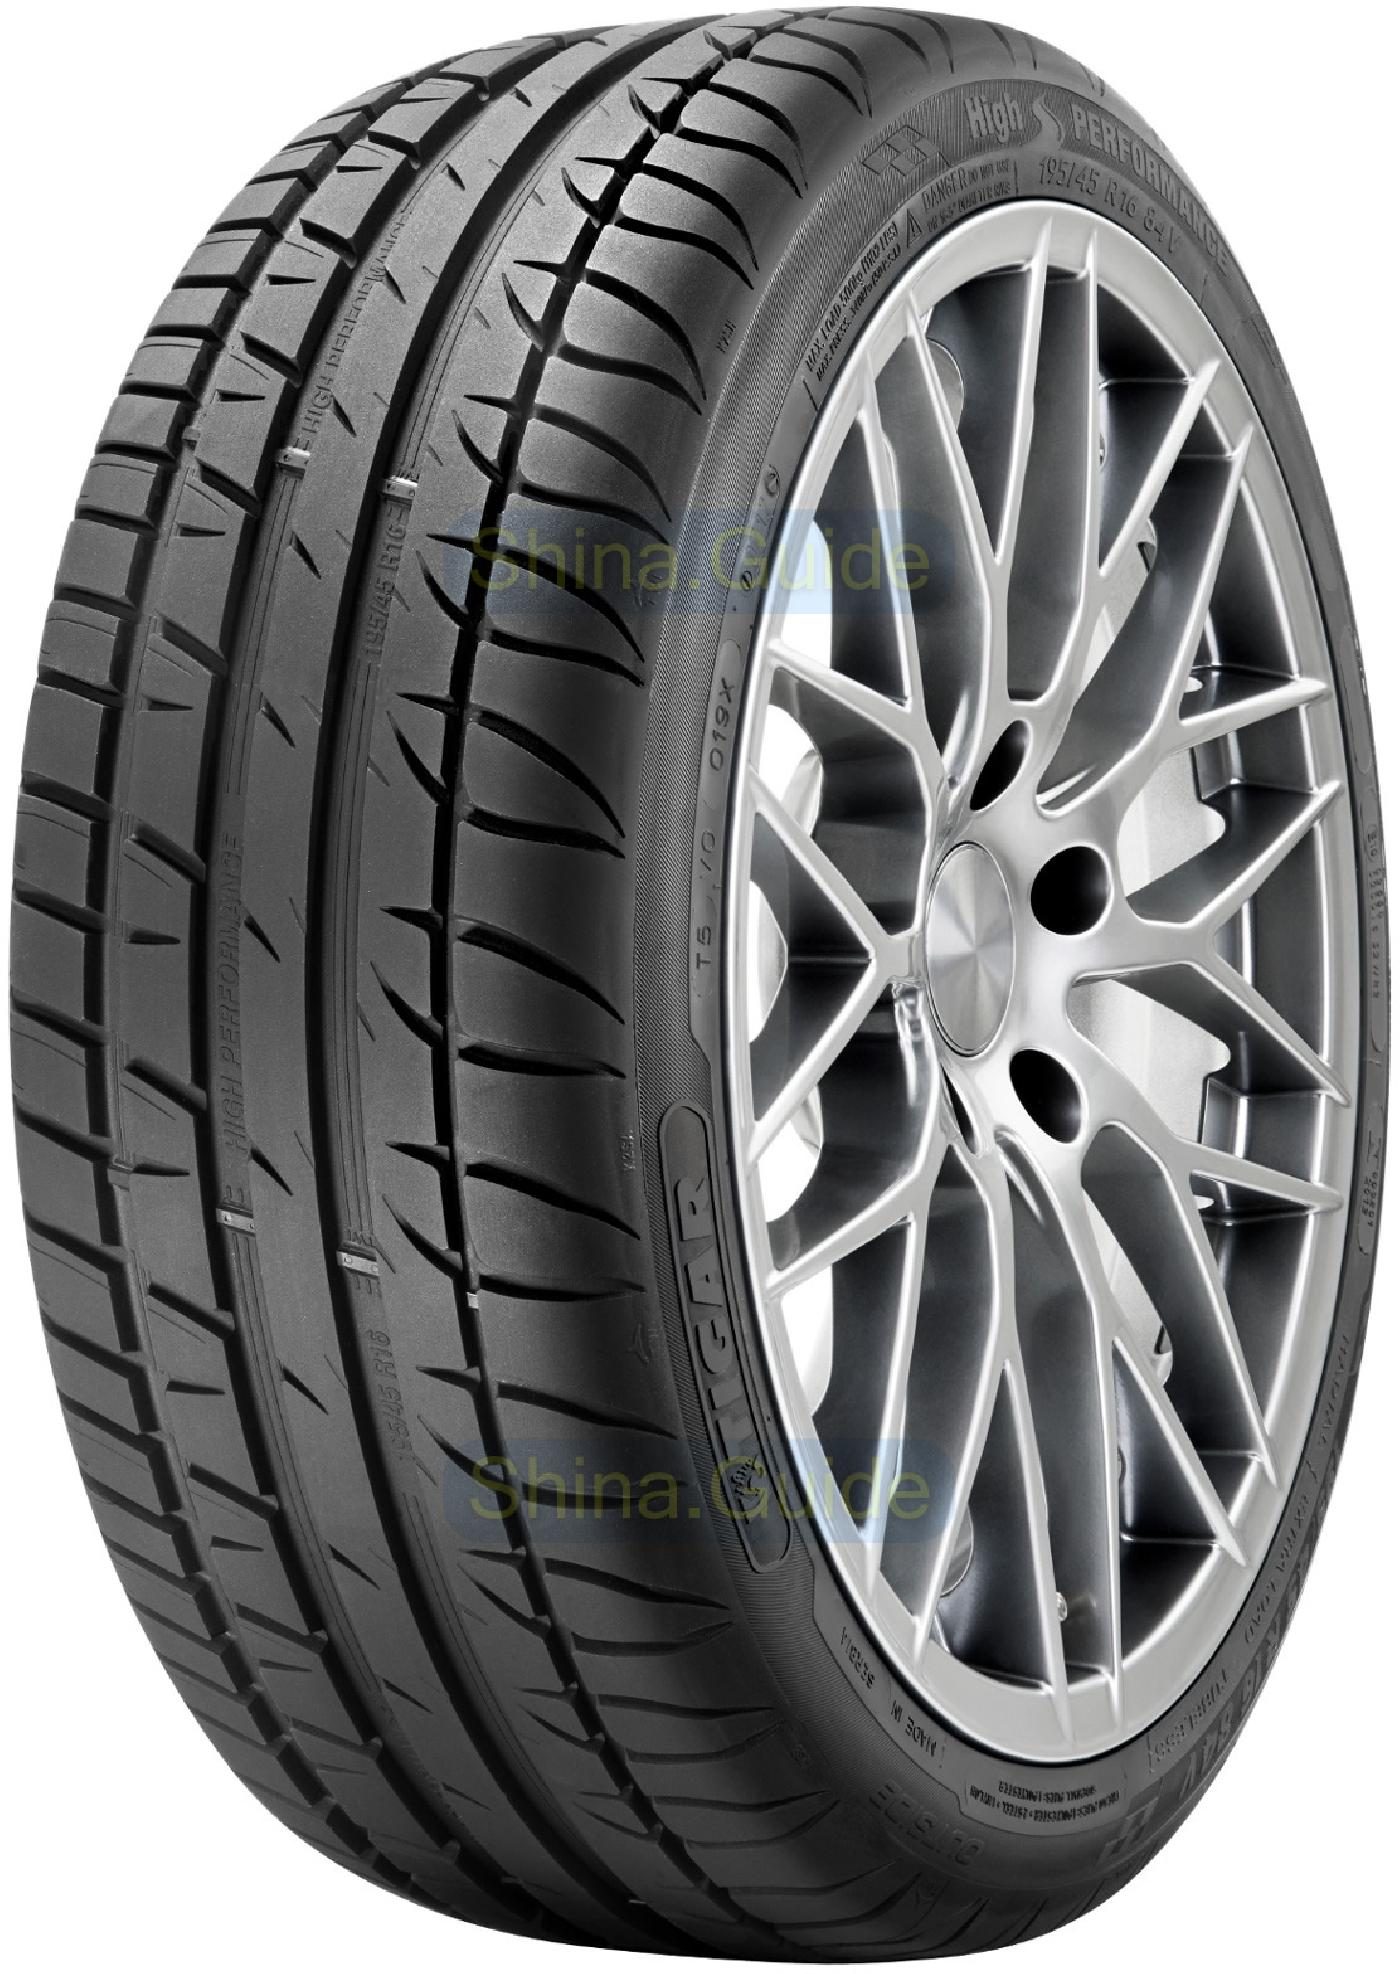 TIGAR HIGH PERFORMANCE 215/50 R17 95W